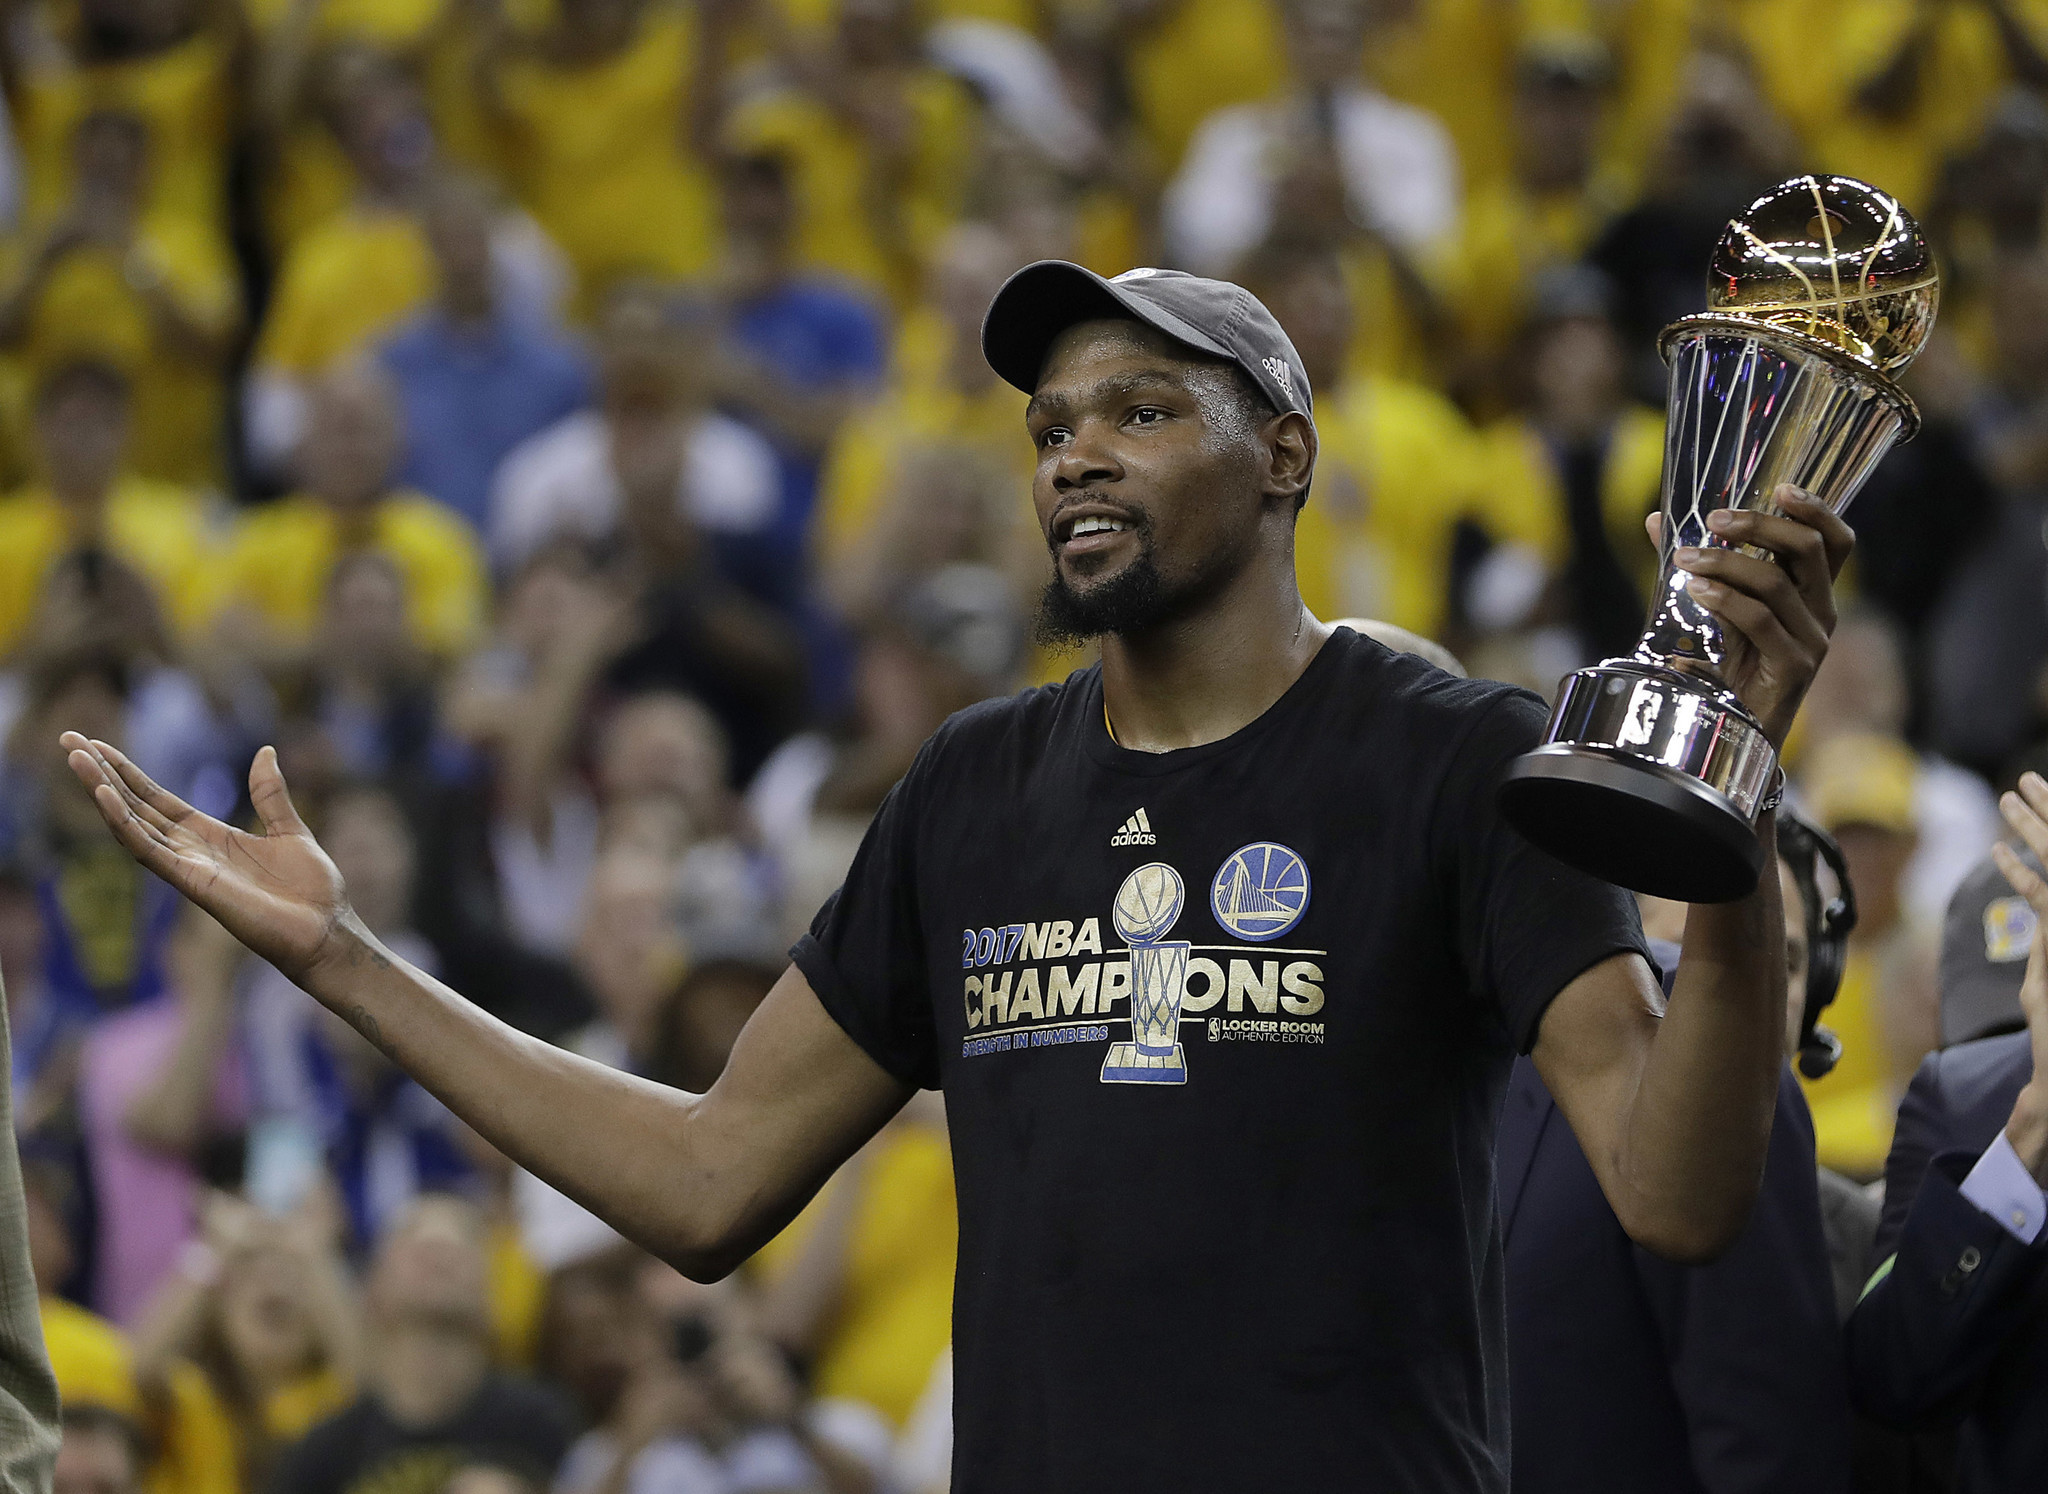 Kevin Durant agrees to 2-year deal to remain with Warriors: AP source - Chicago Tribune